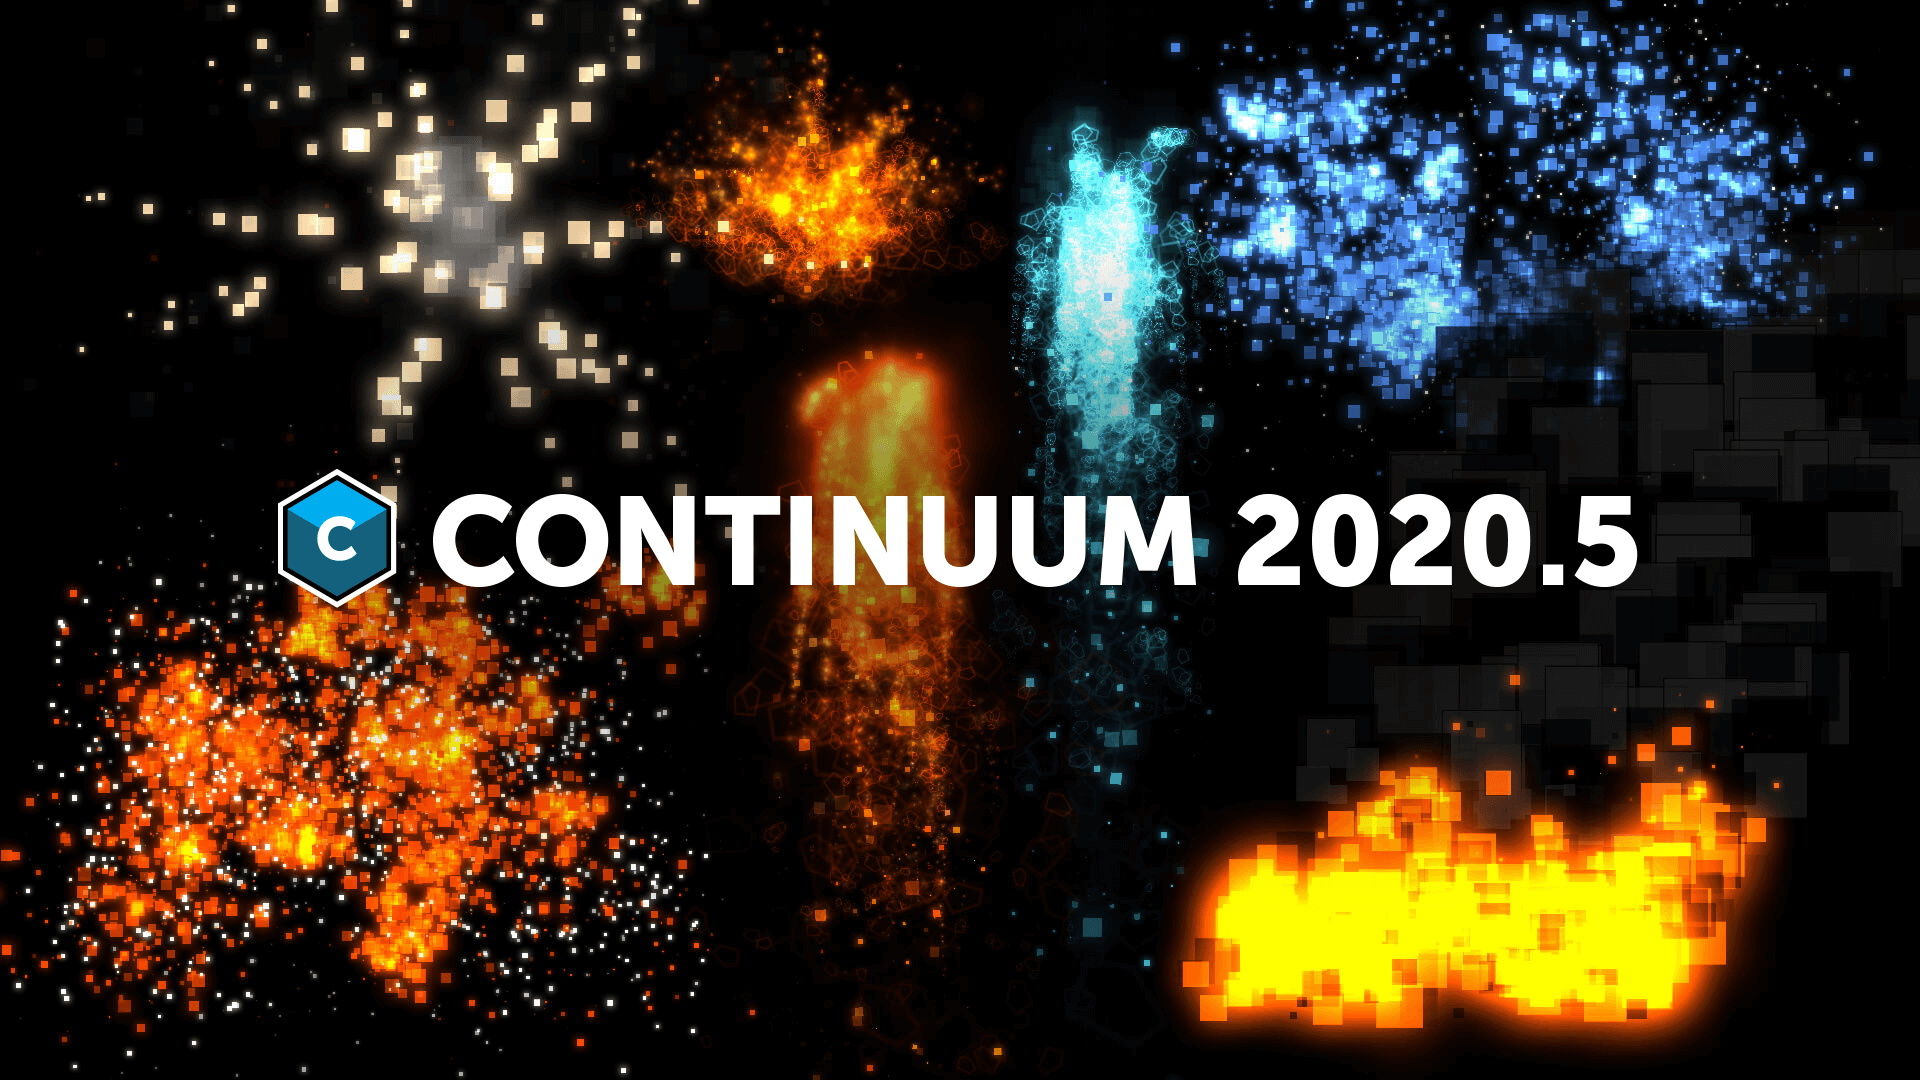 Continuum 2020.5 new Particle Illusion forces and emitters